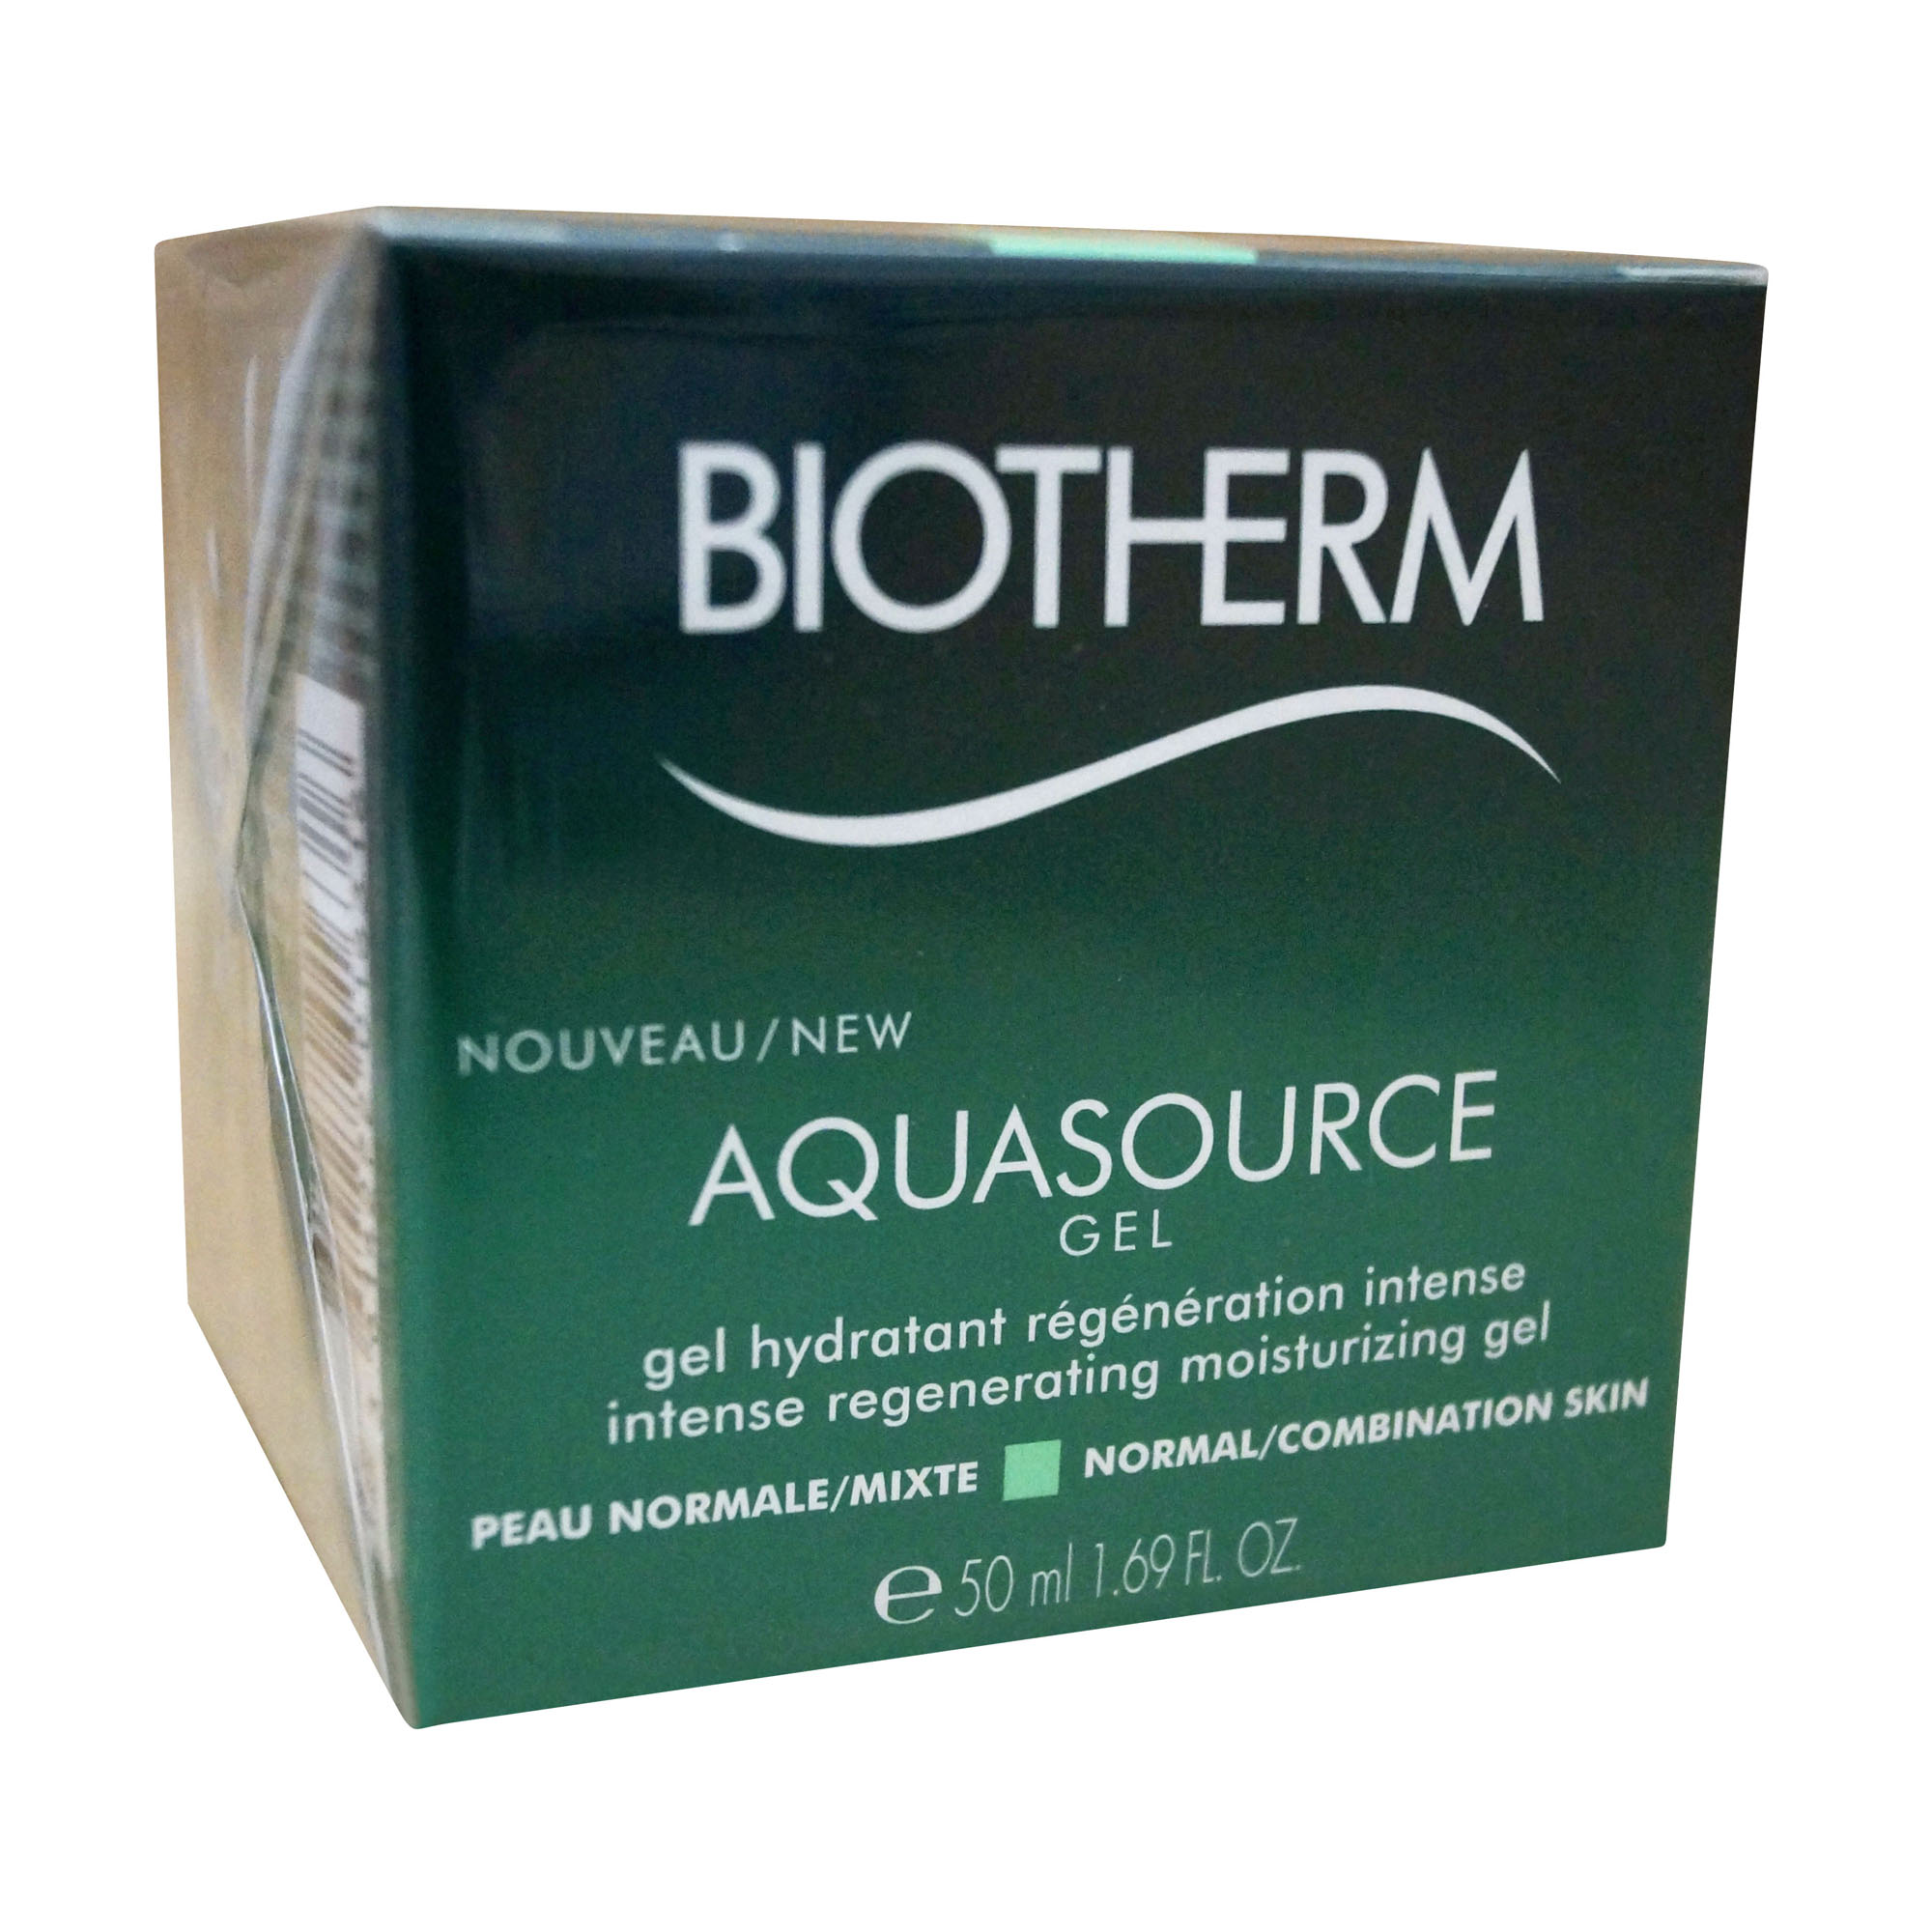 Aquasource Moisturizing Cream For Normal To Mixed Skin by Biotherm #8